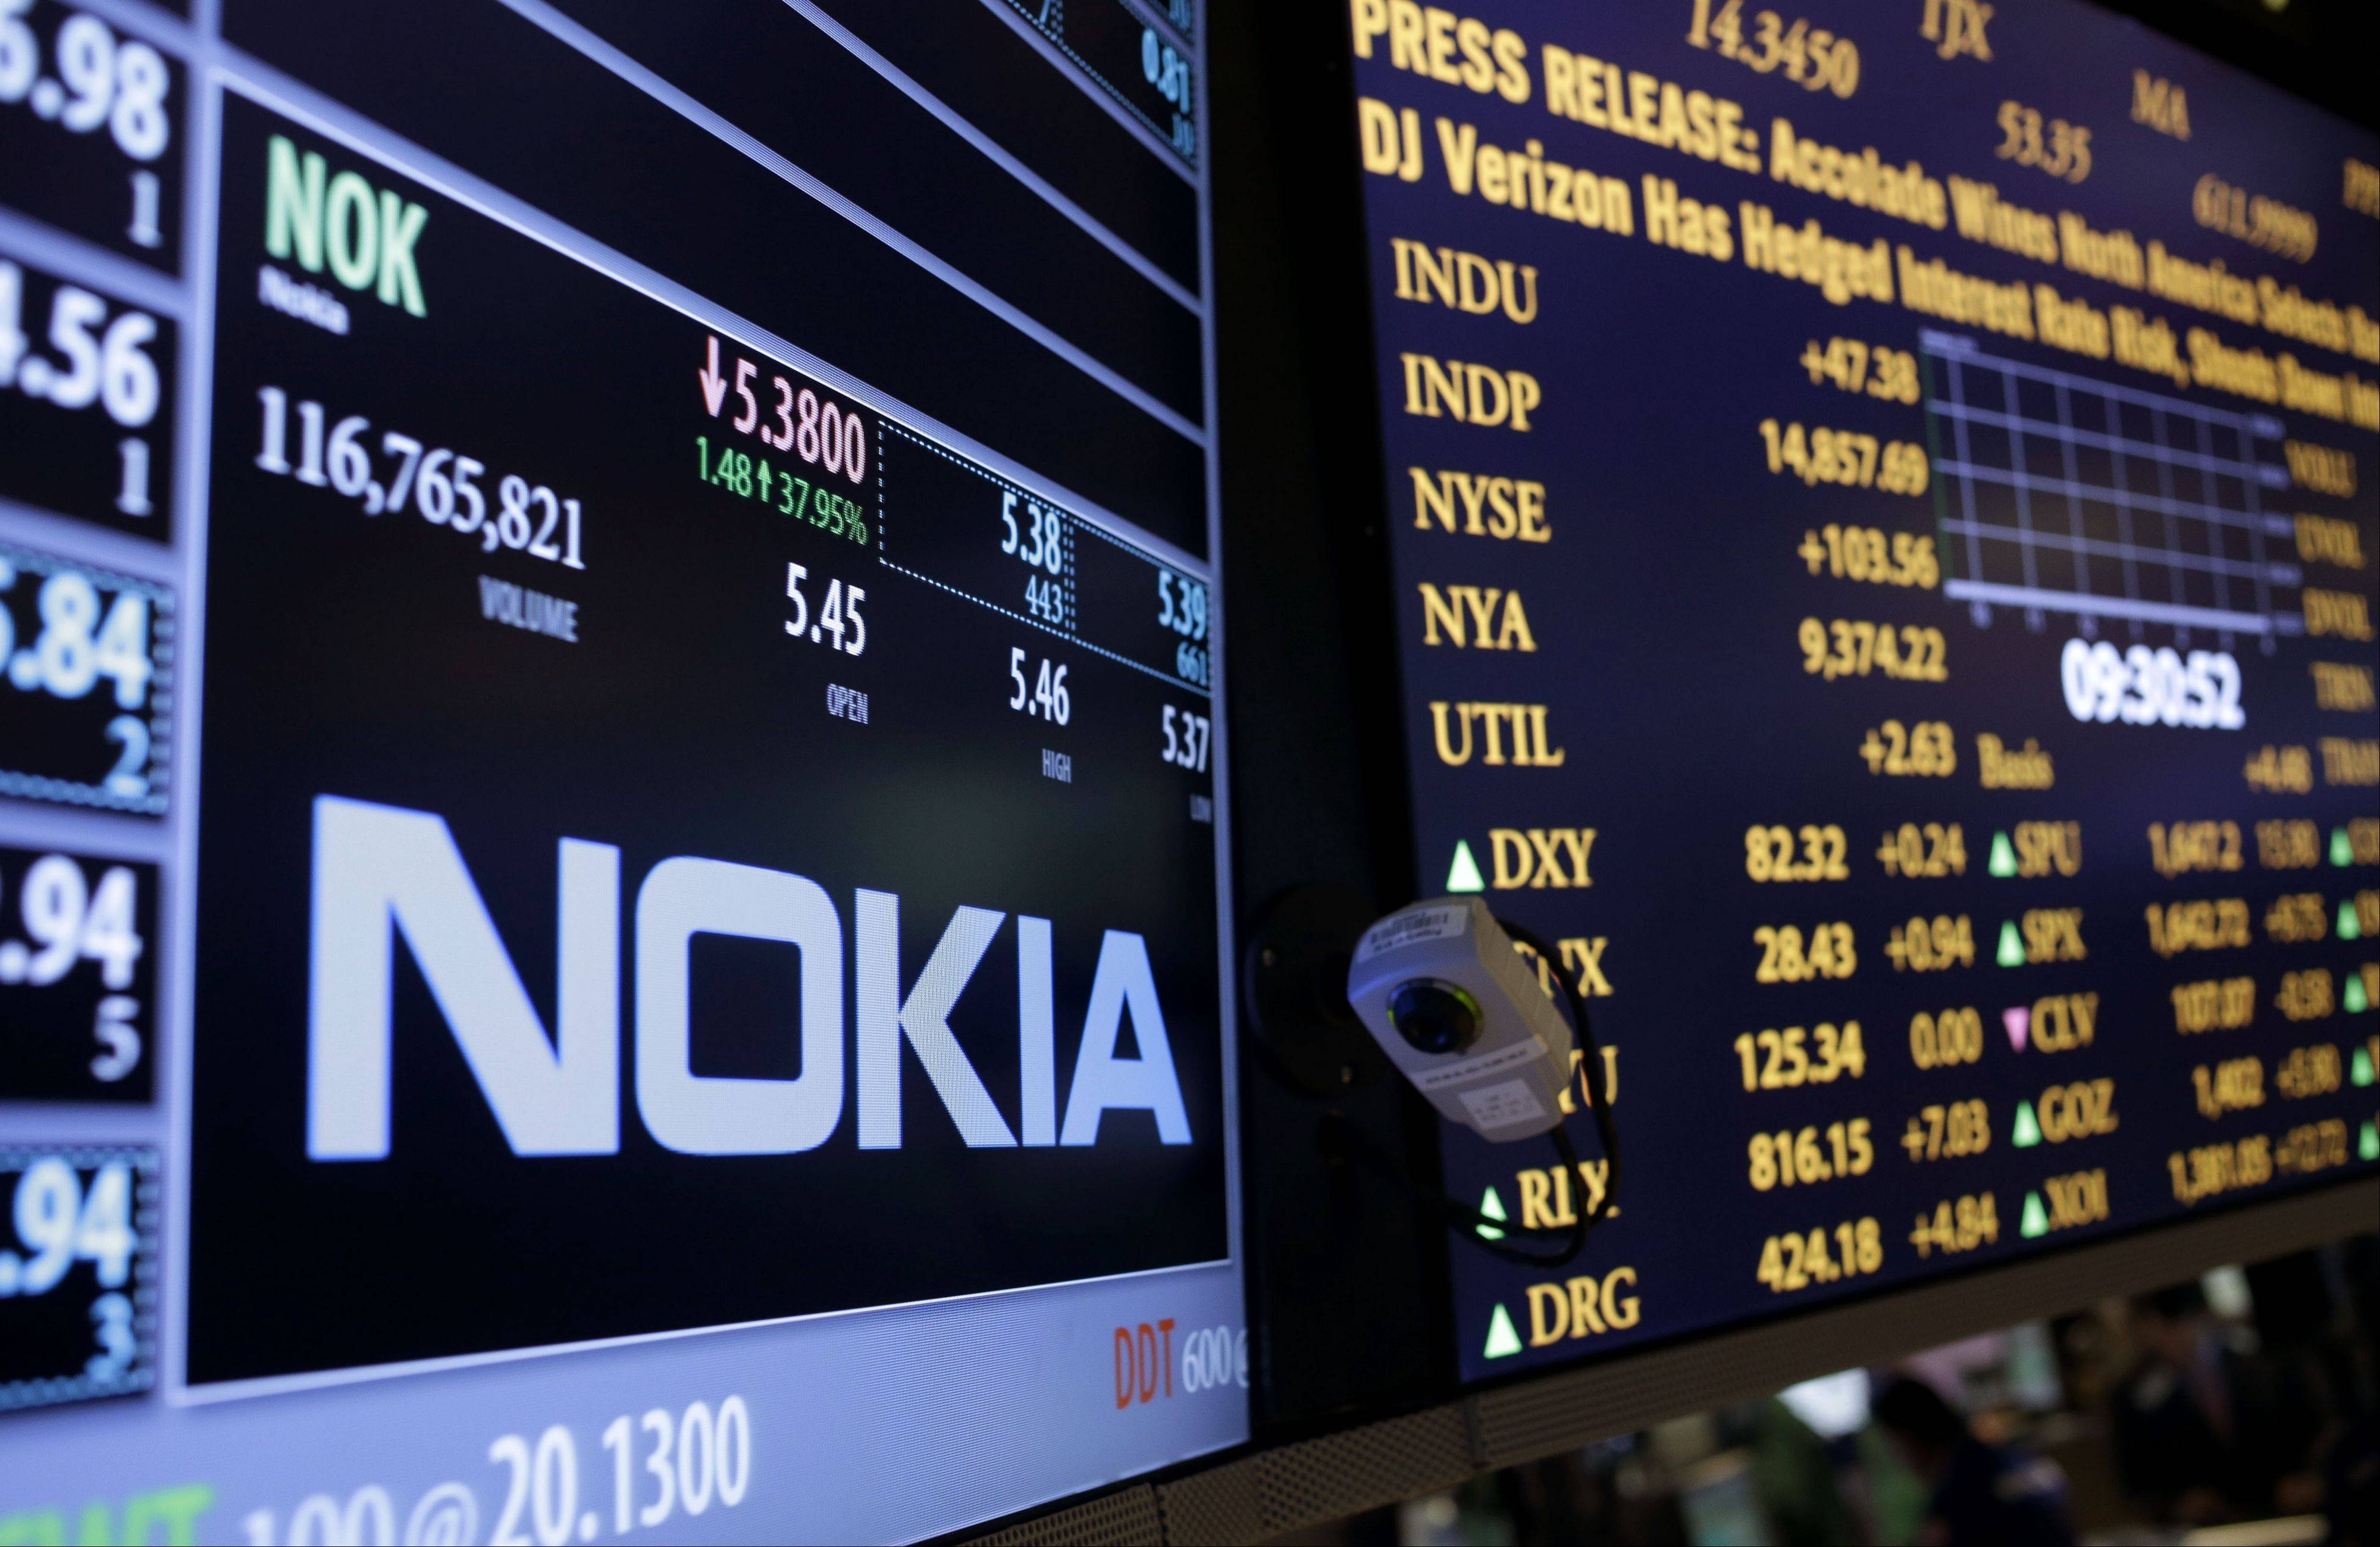 The Nokia brand name is displayed on the floor of the New York Stock Exchange in New York Tuesday after Microsoft announced it would pay $7.2 billion to acquire Nokia's line-up of smartphones and a portfolio of patents and services.